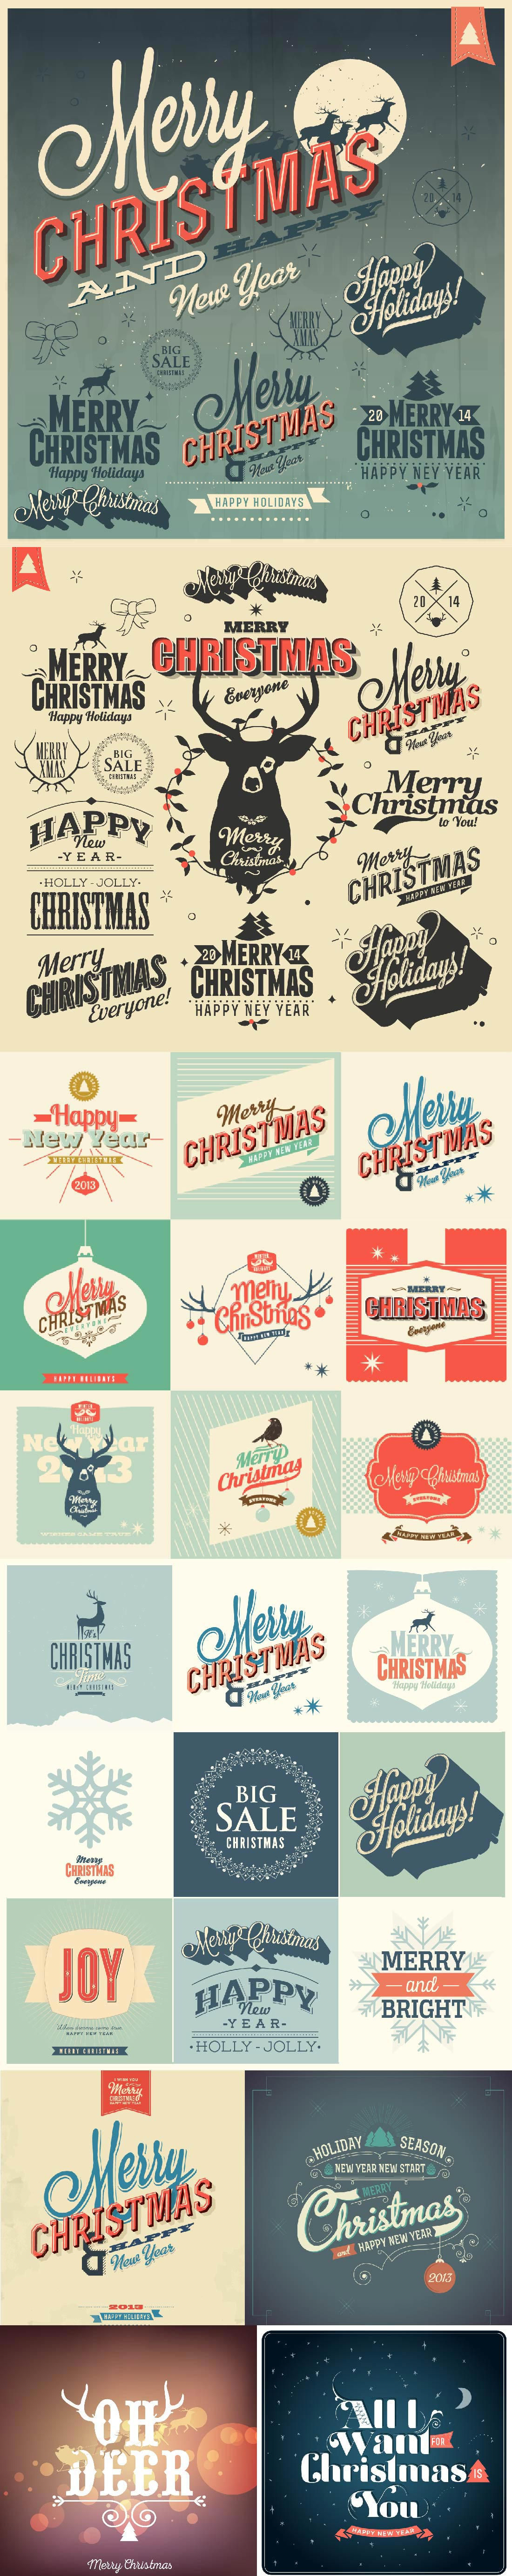 500+ Premium Vectors Collection 9